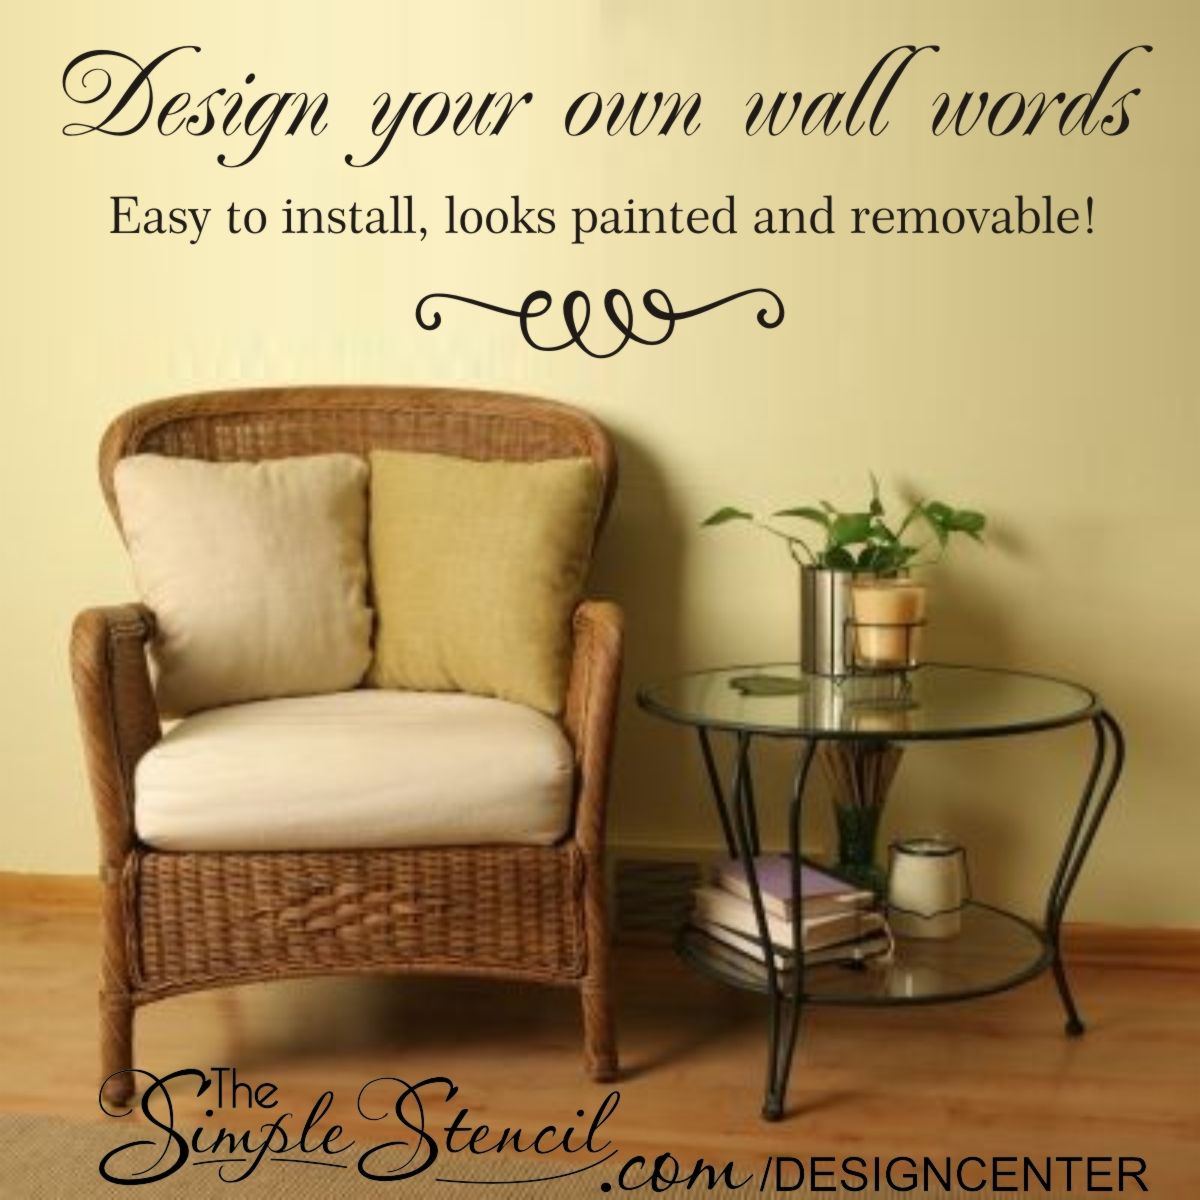 Design custom wall decals, words, letters, names, songs, poems, etc ...